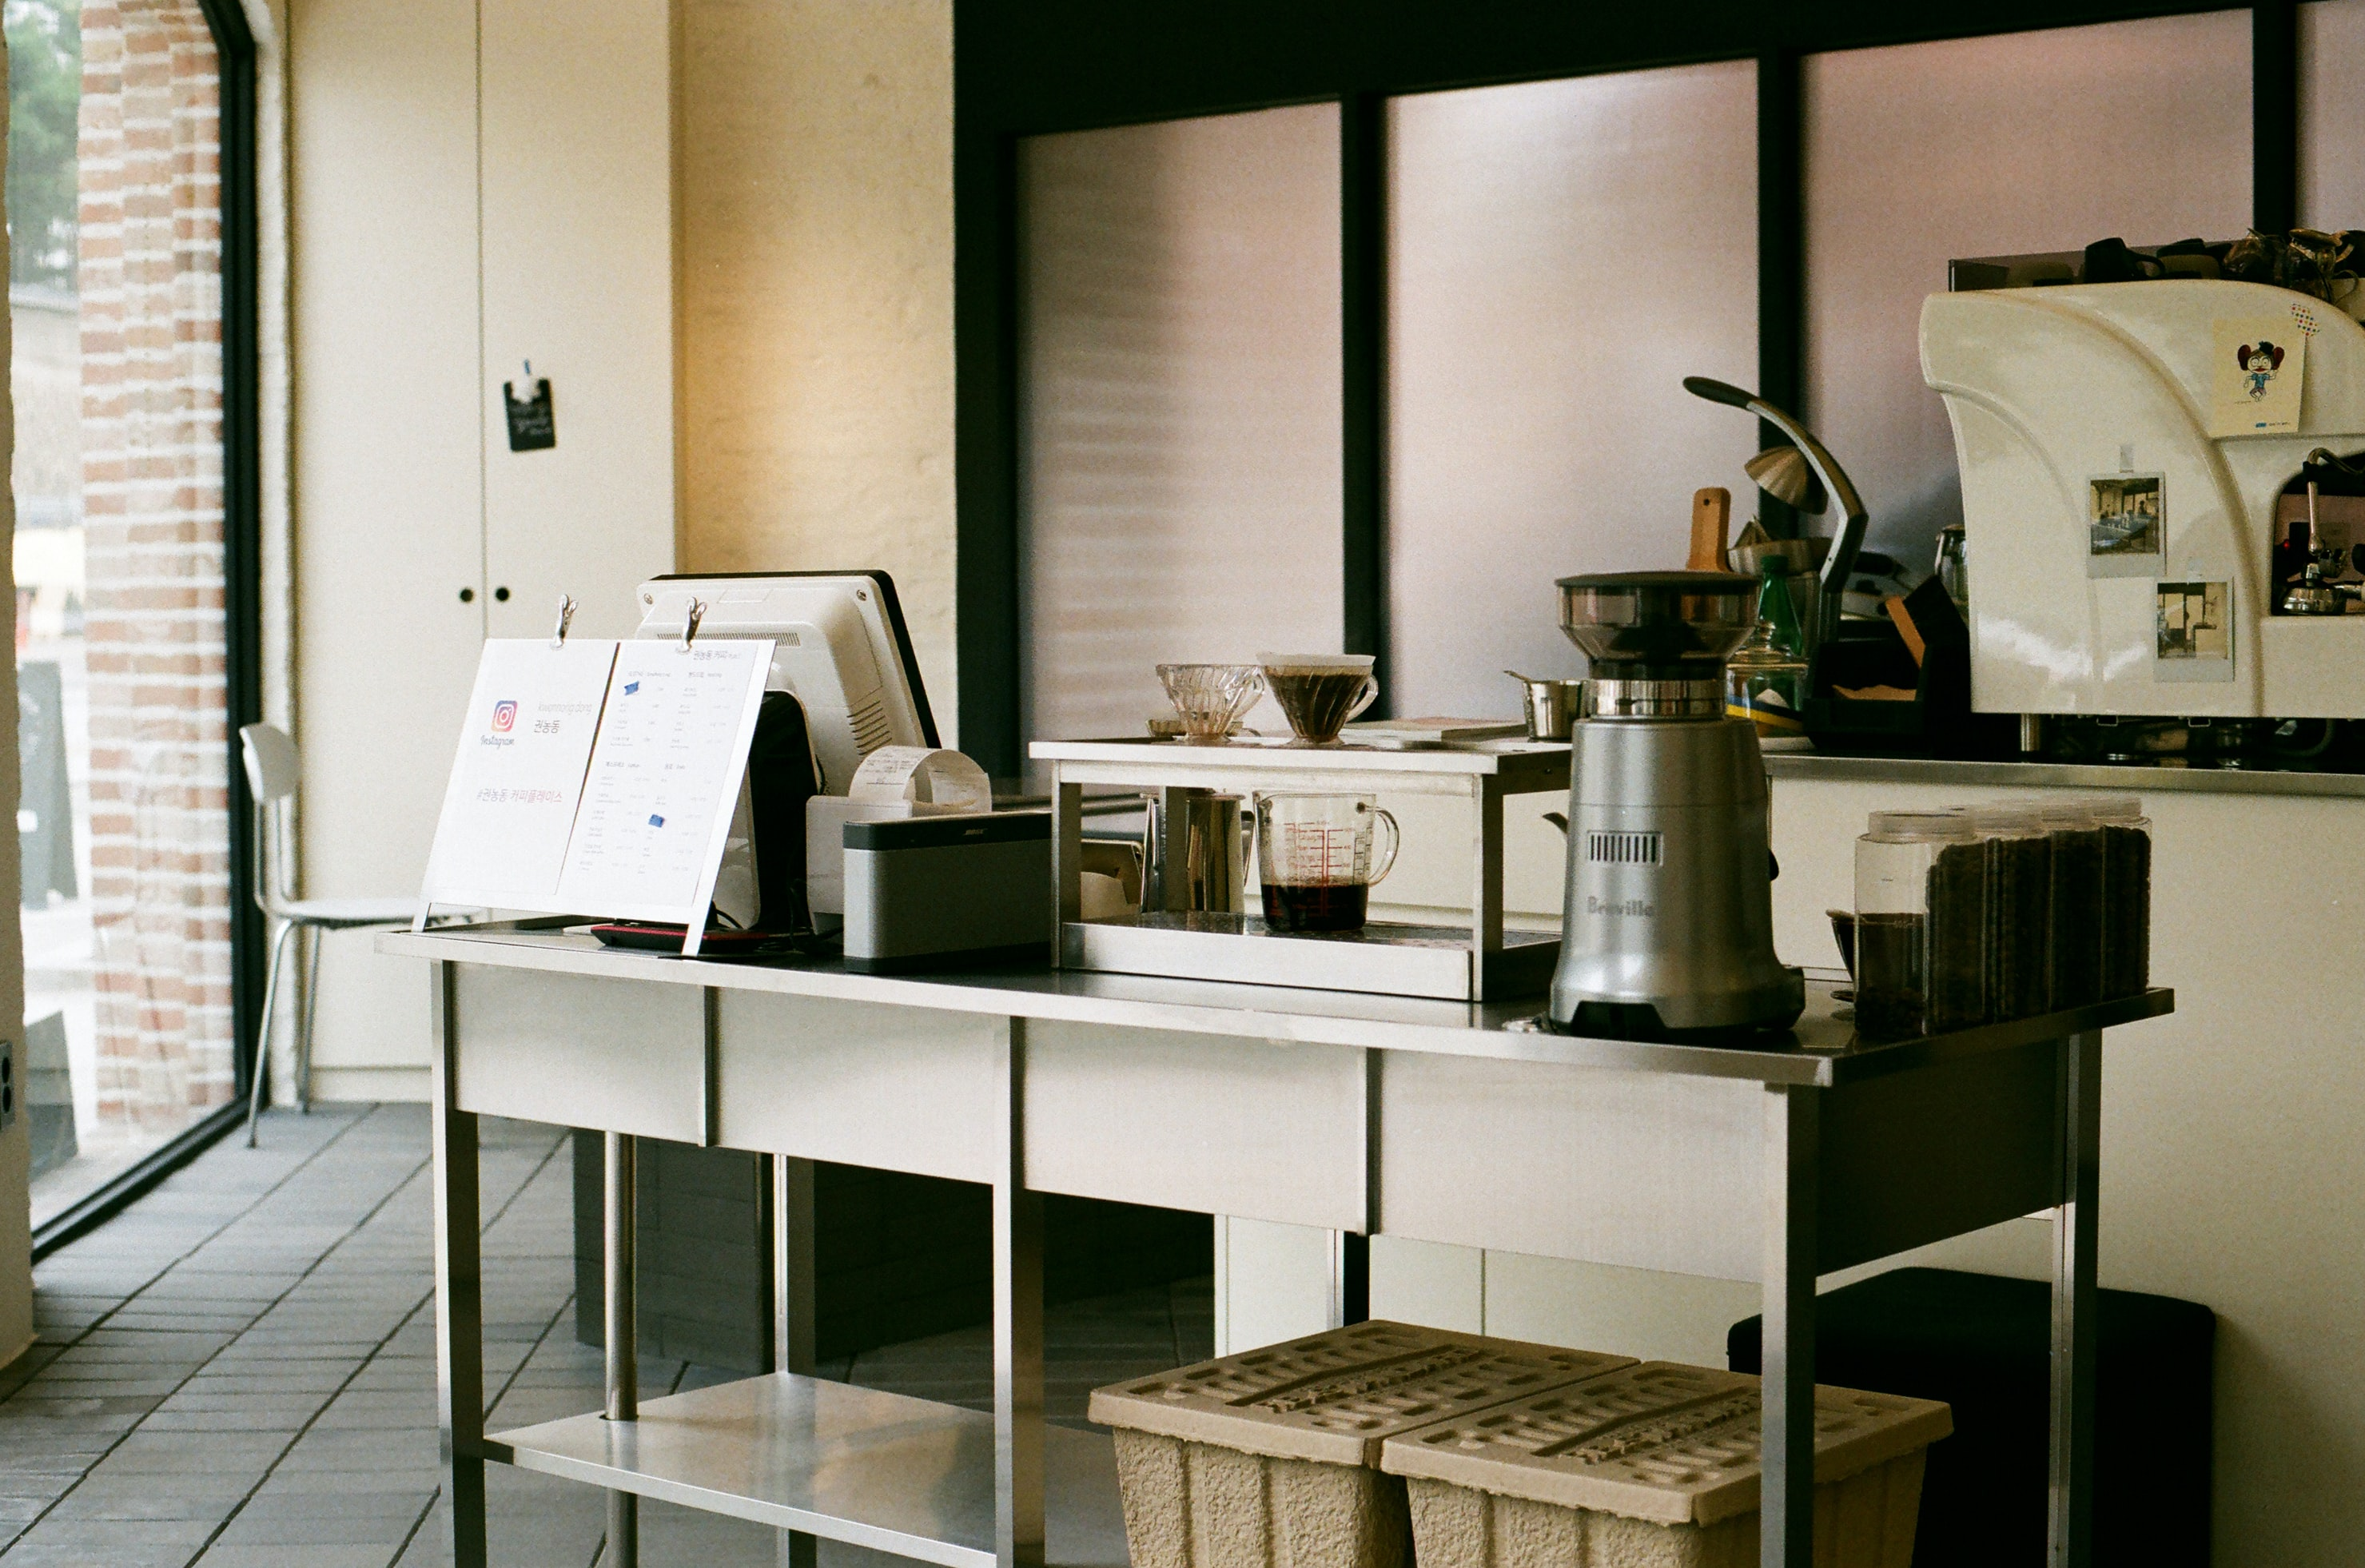 stainless steel table with coffeemaker